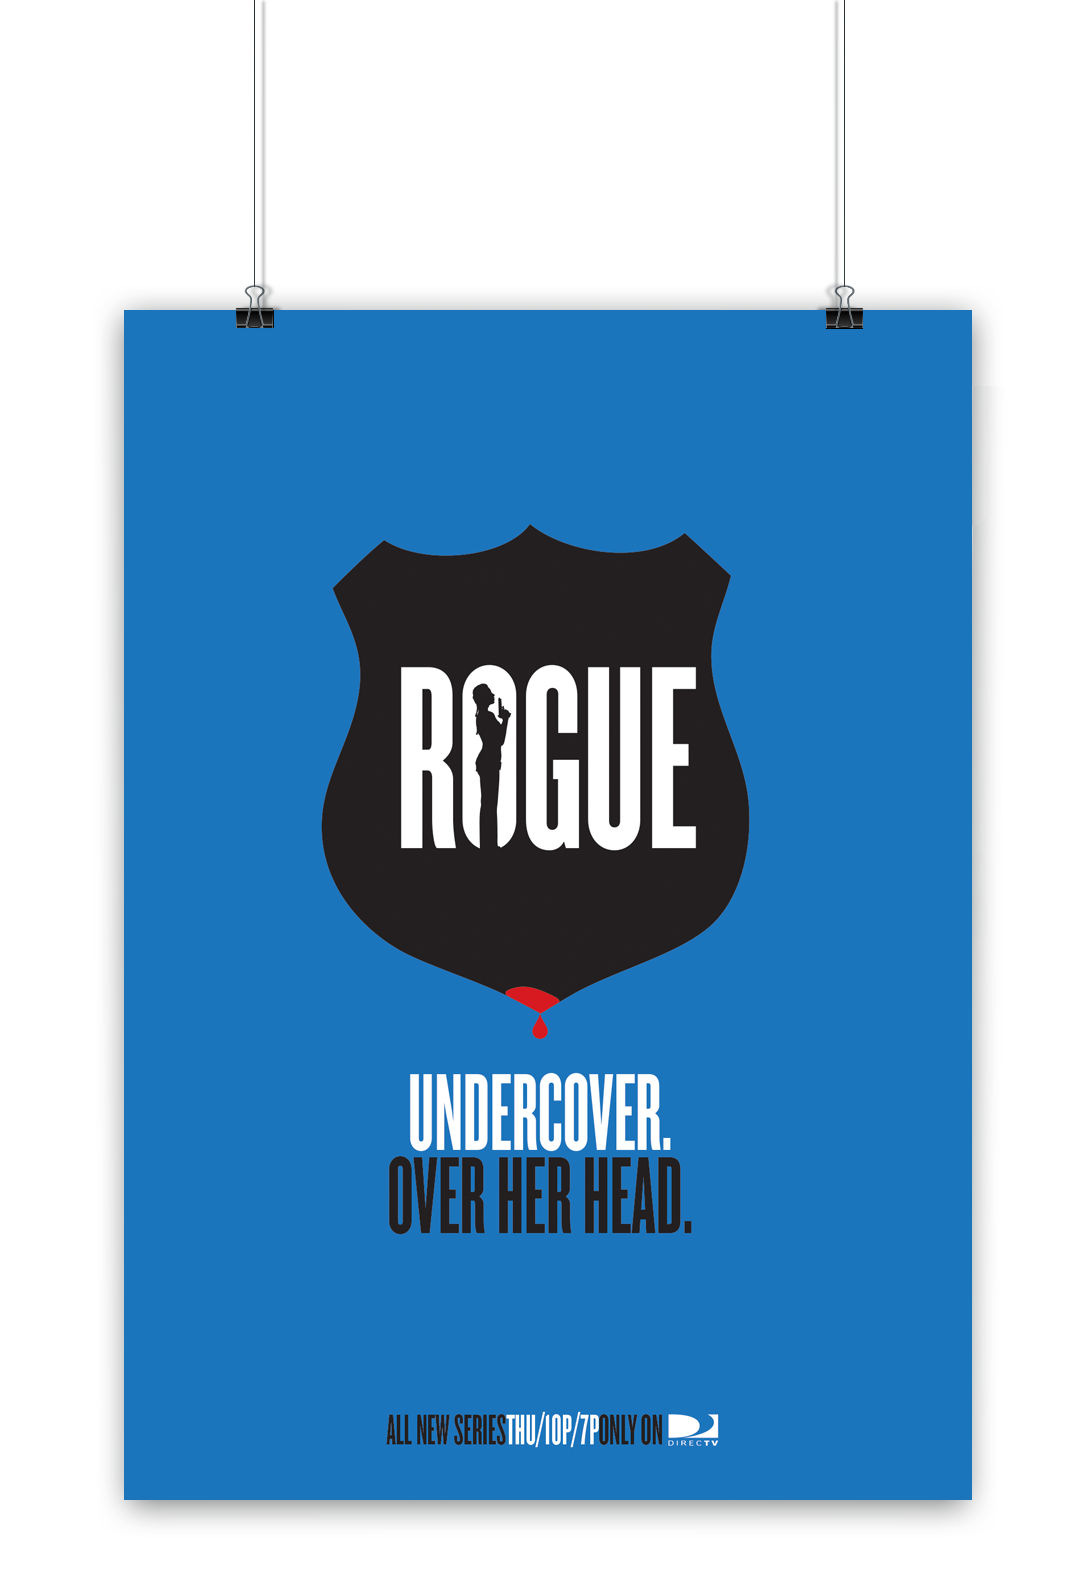 scottgericke_posters_rogue4.png